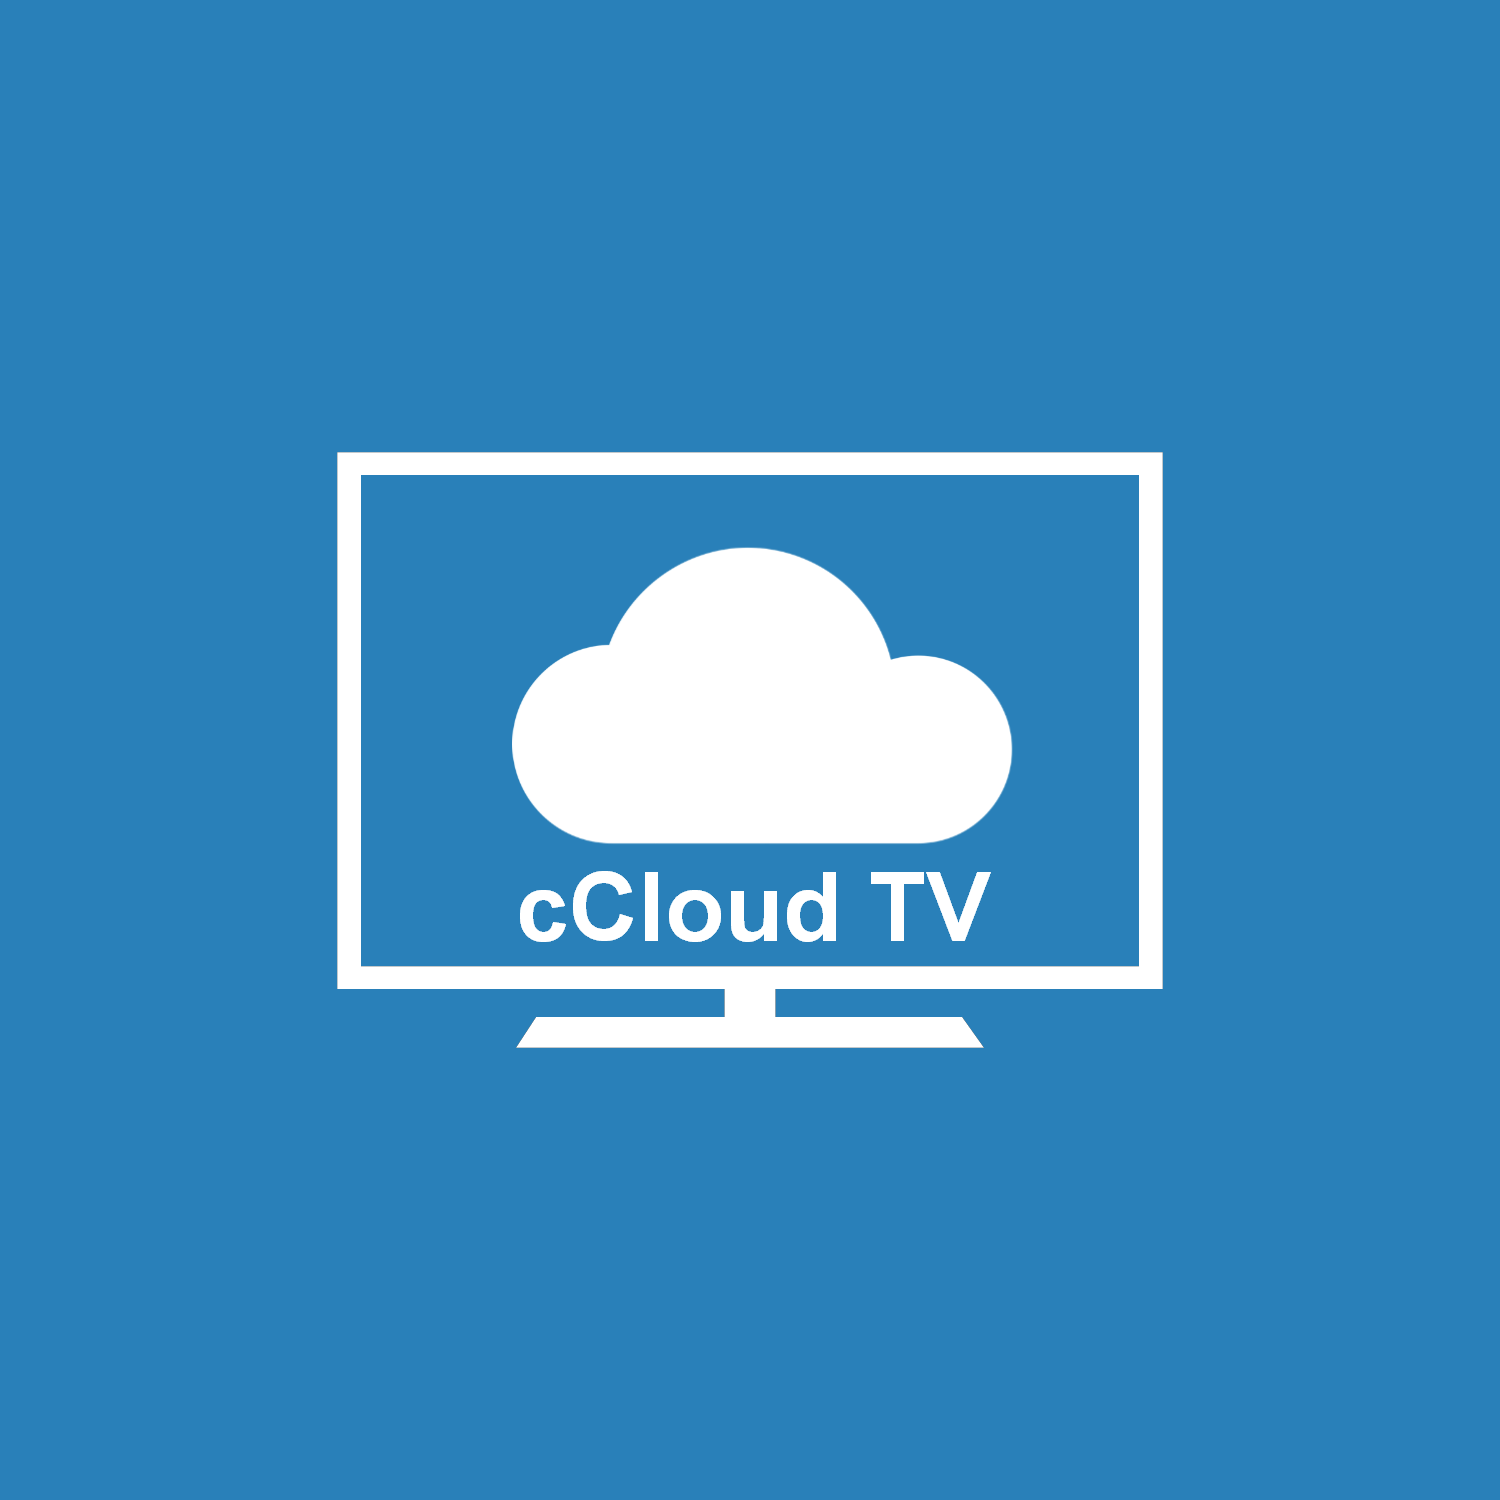 REL] CcloudTv Channel (IPTV) - Plugins - Plex Forum